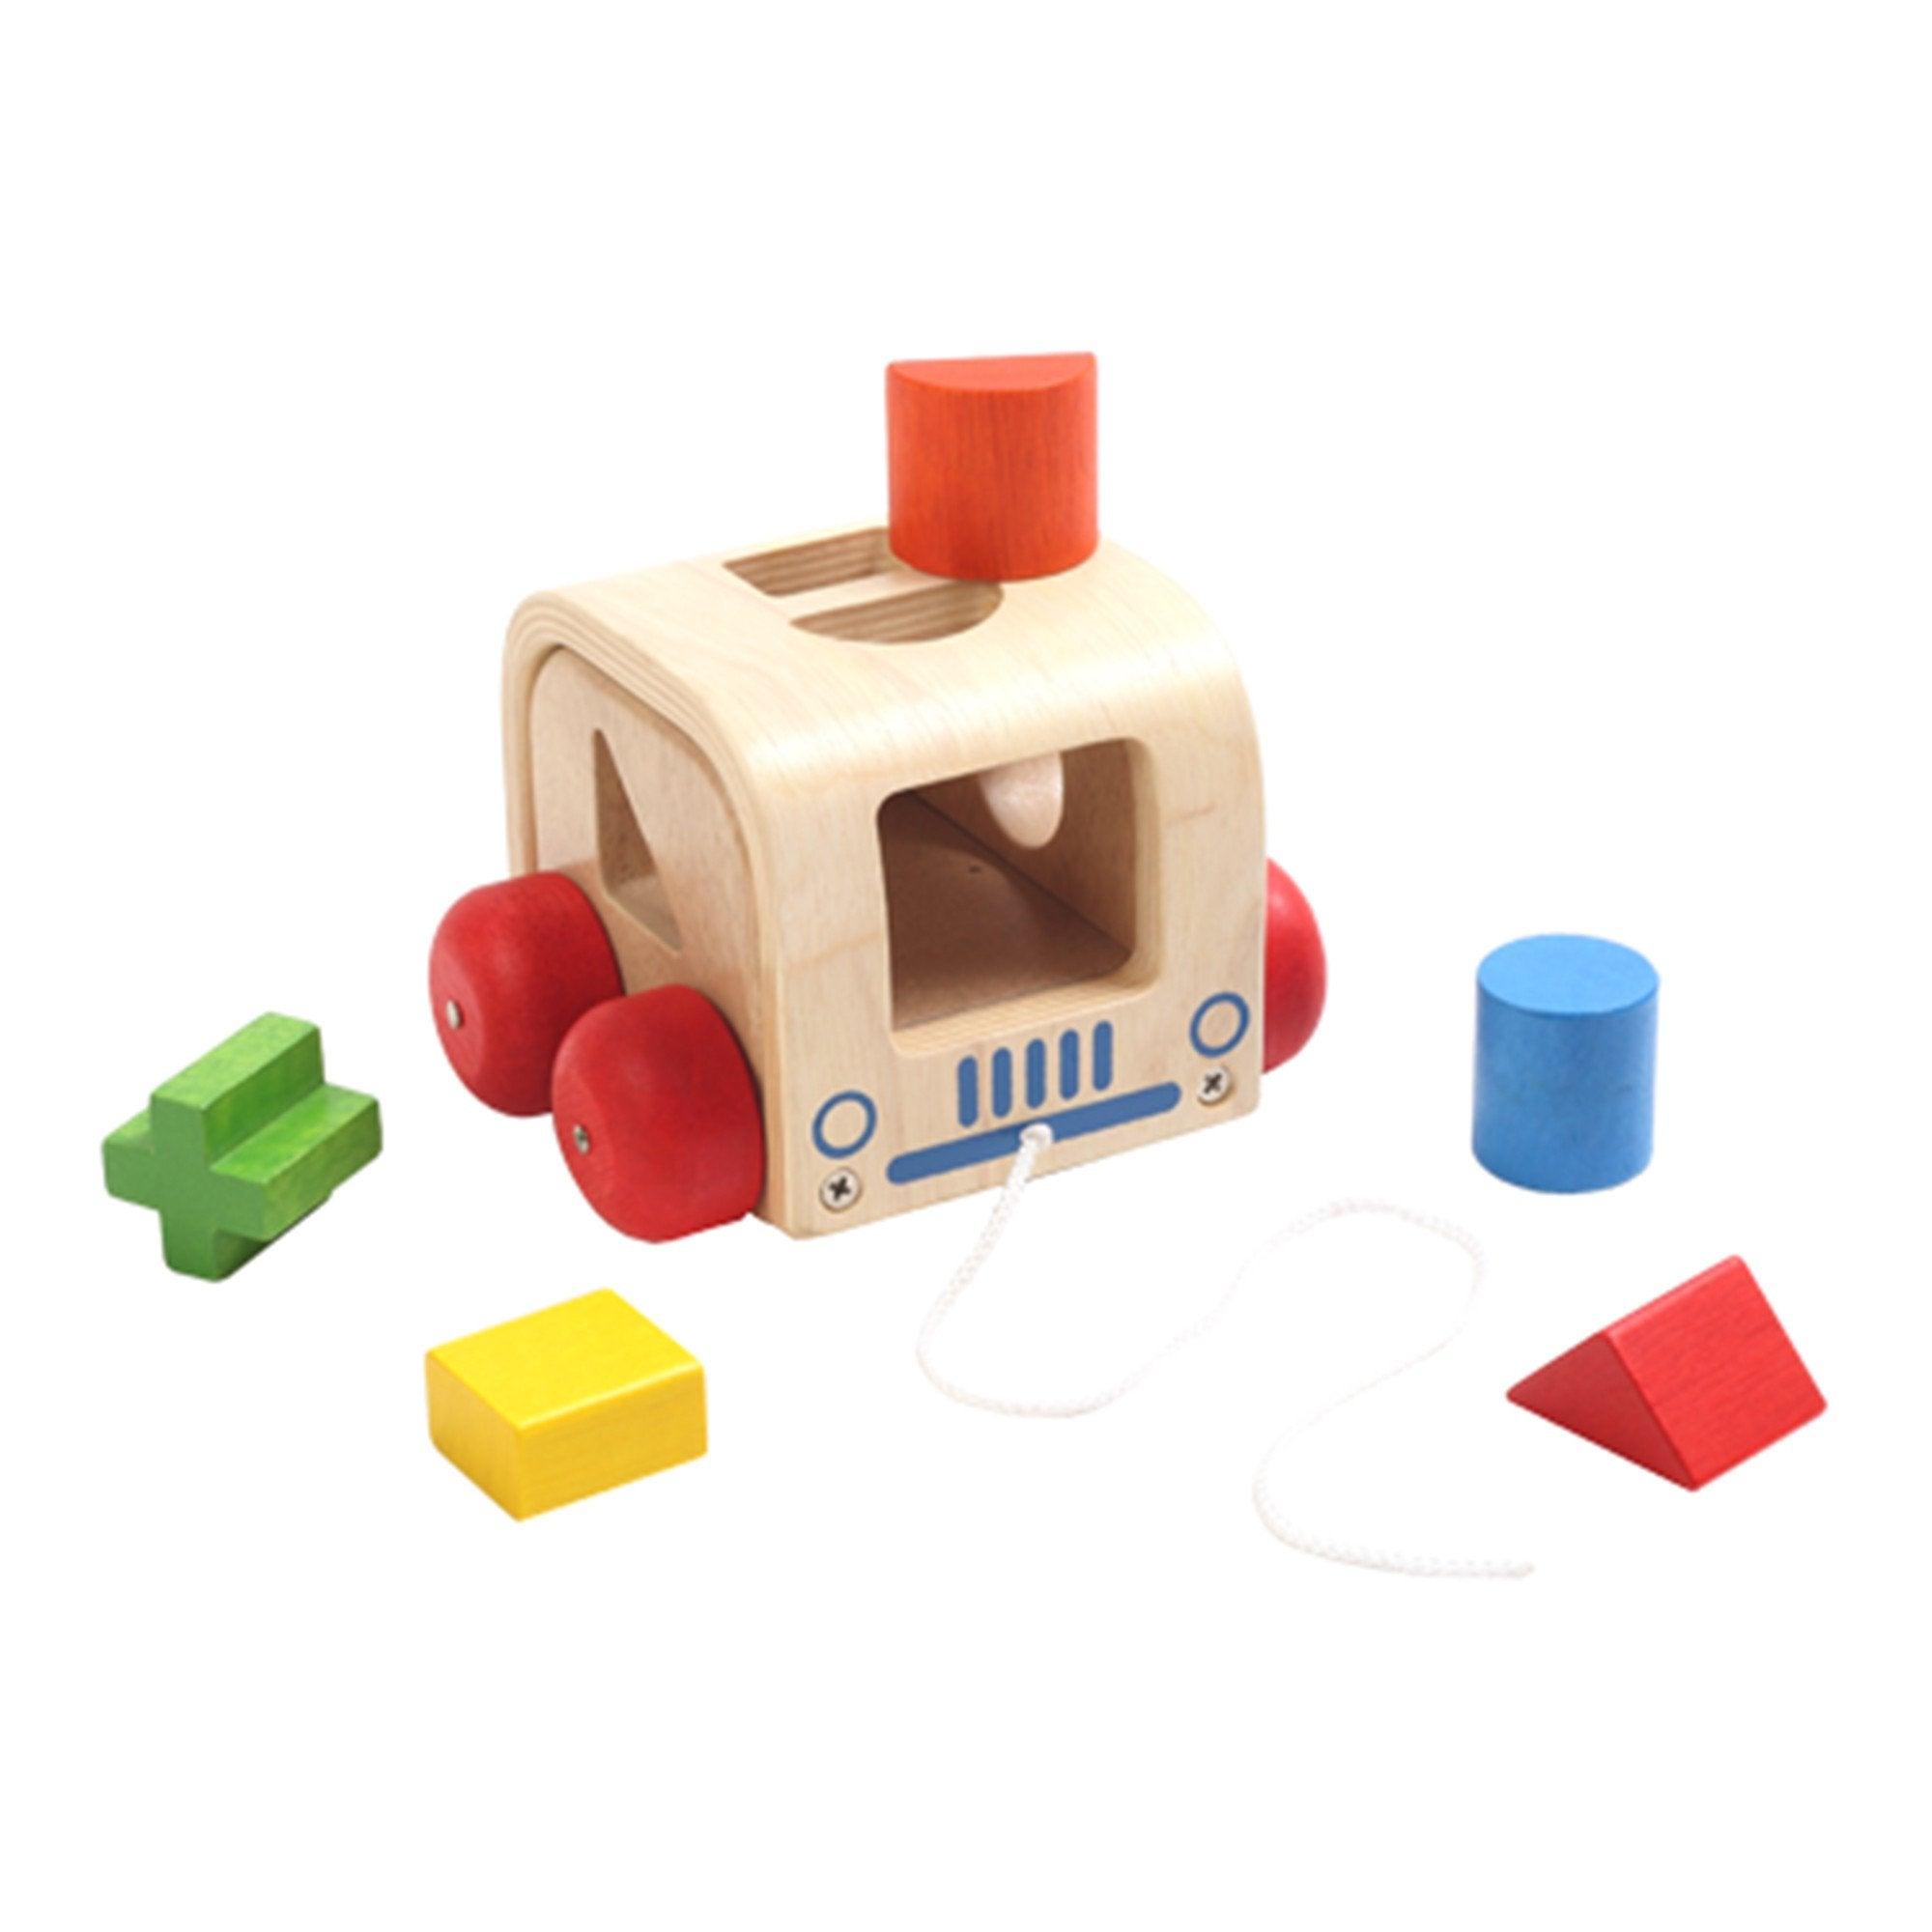 Wooden Slot - Mobile Voila Push and Pull Toys at Little Earth Nest Eco Shop